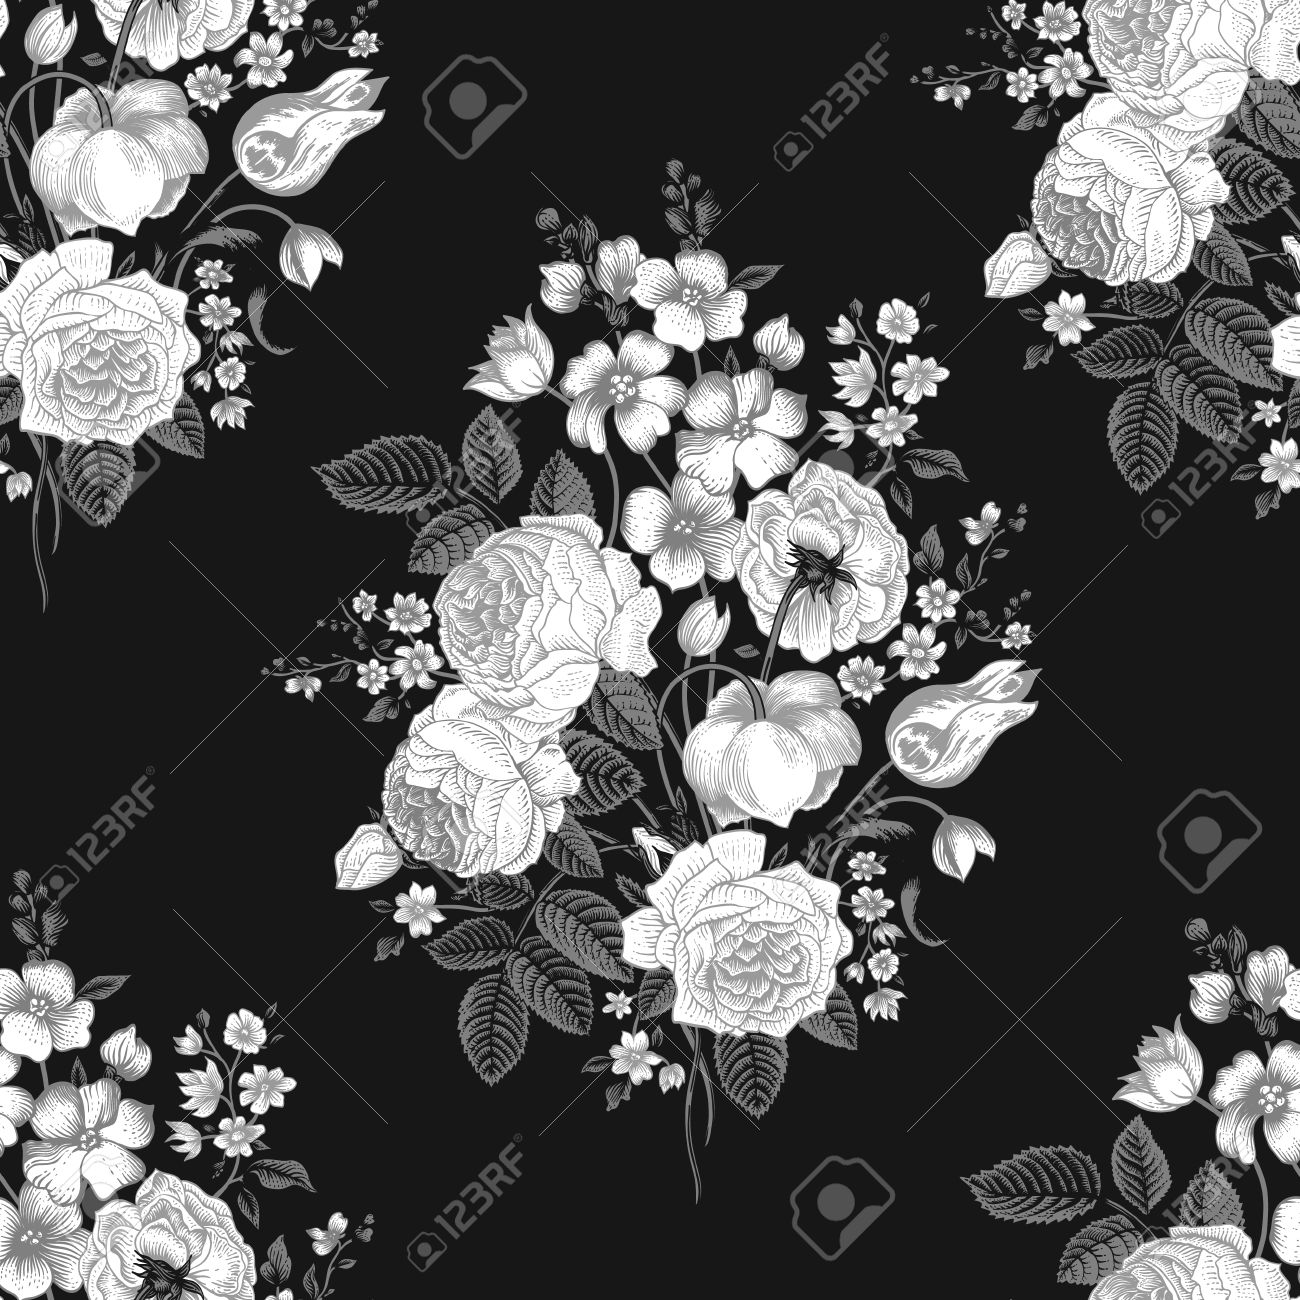 Flower Bouquet Black And White White Flowers on a Black